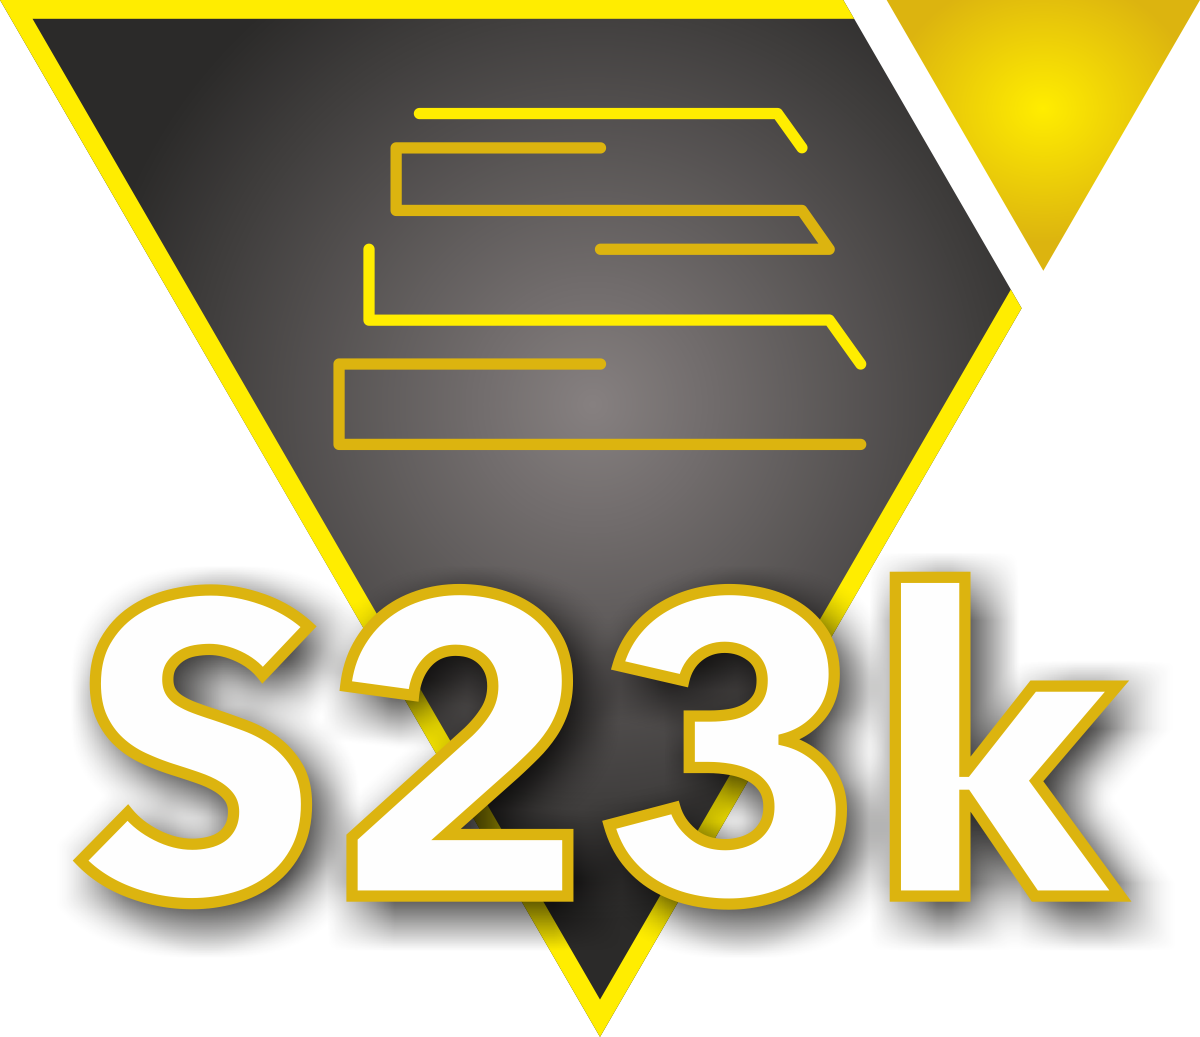 S23k Business Resilience logo